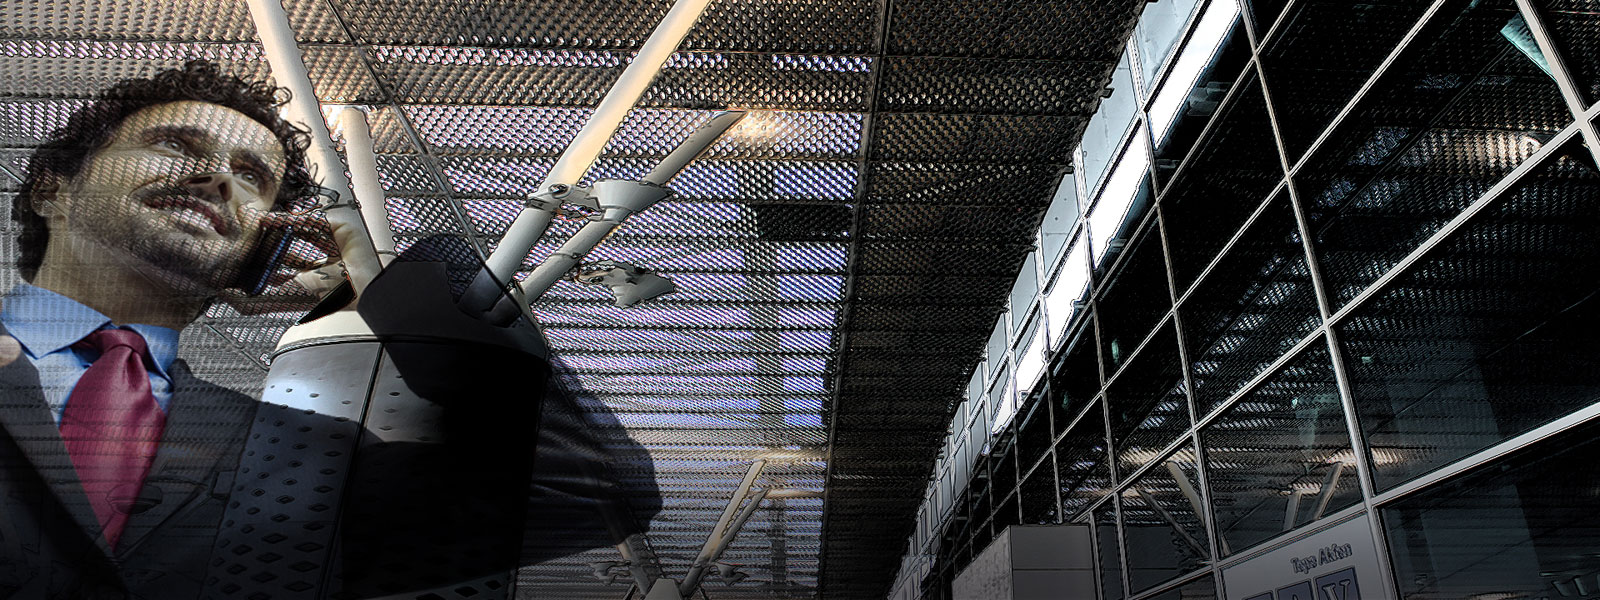 Metal mesh production and supply